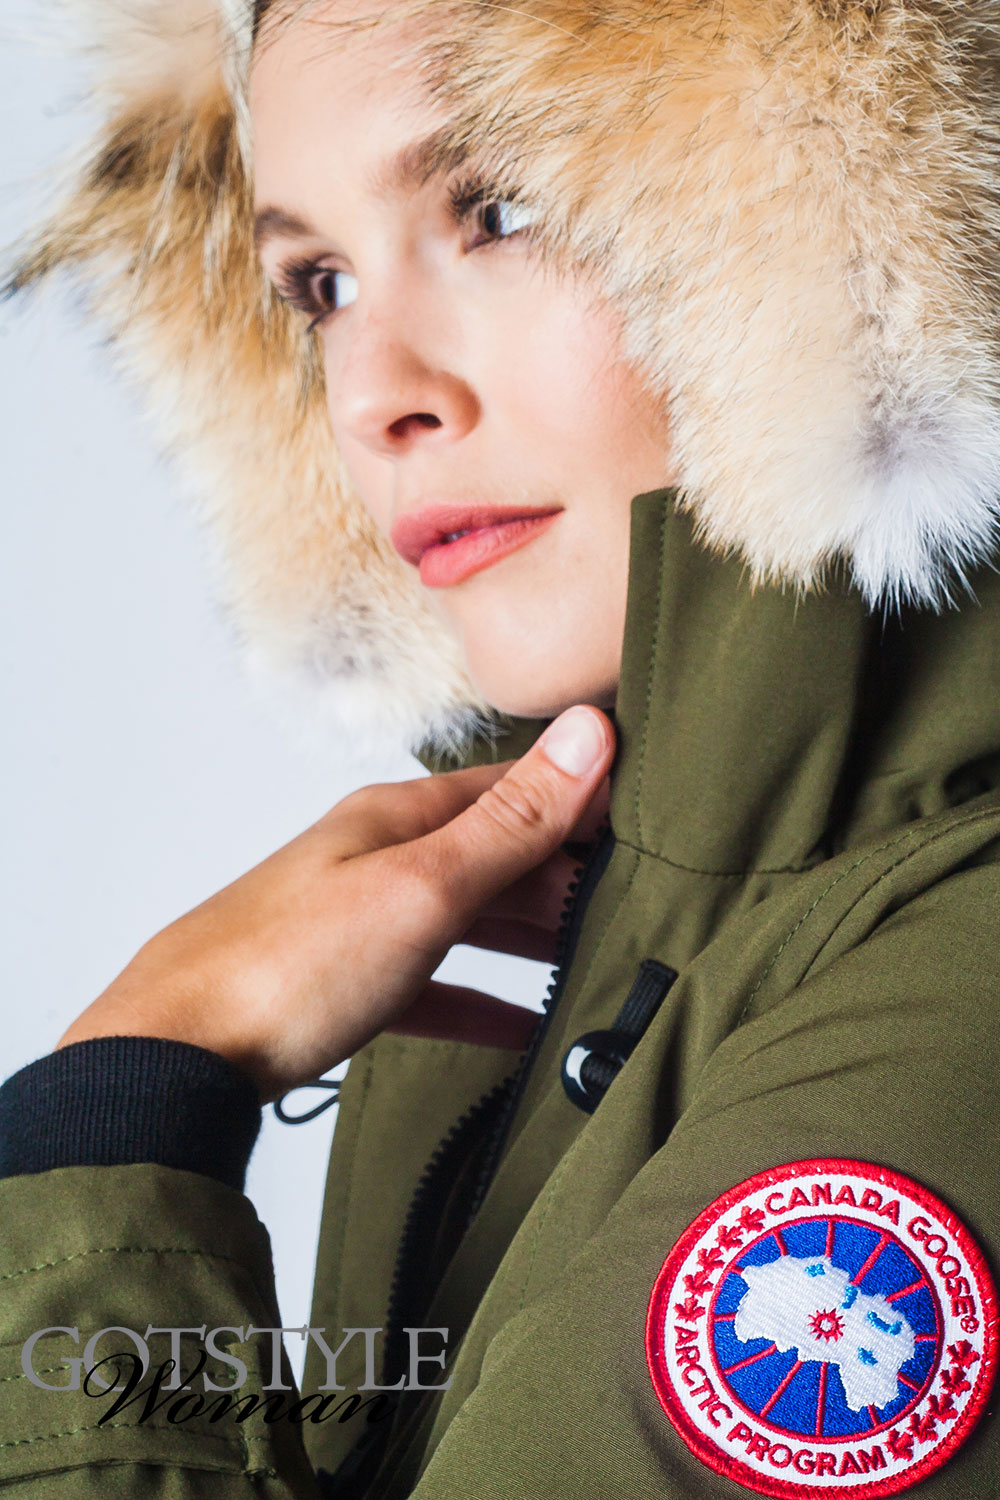 Gotstyle Woman - Canada Goose